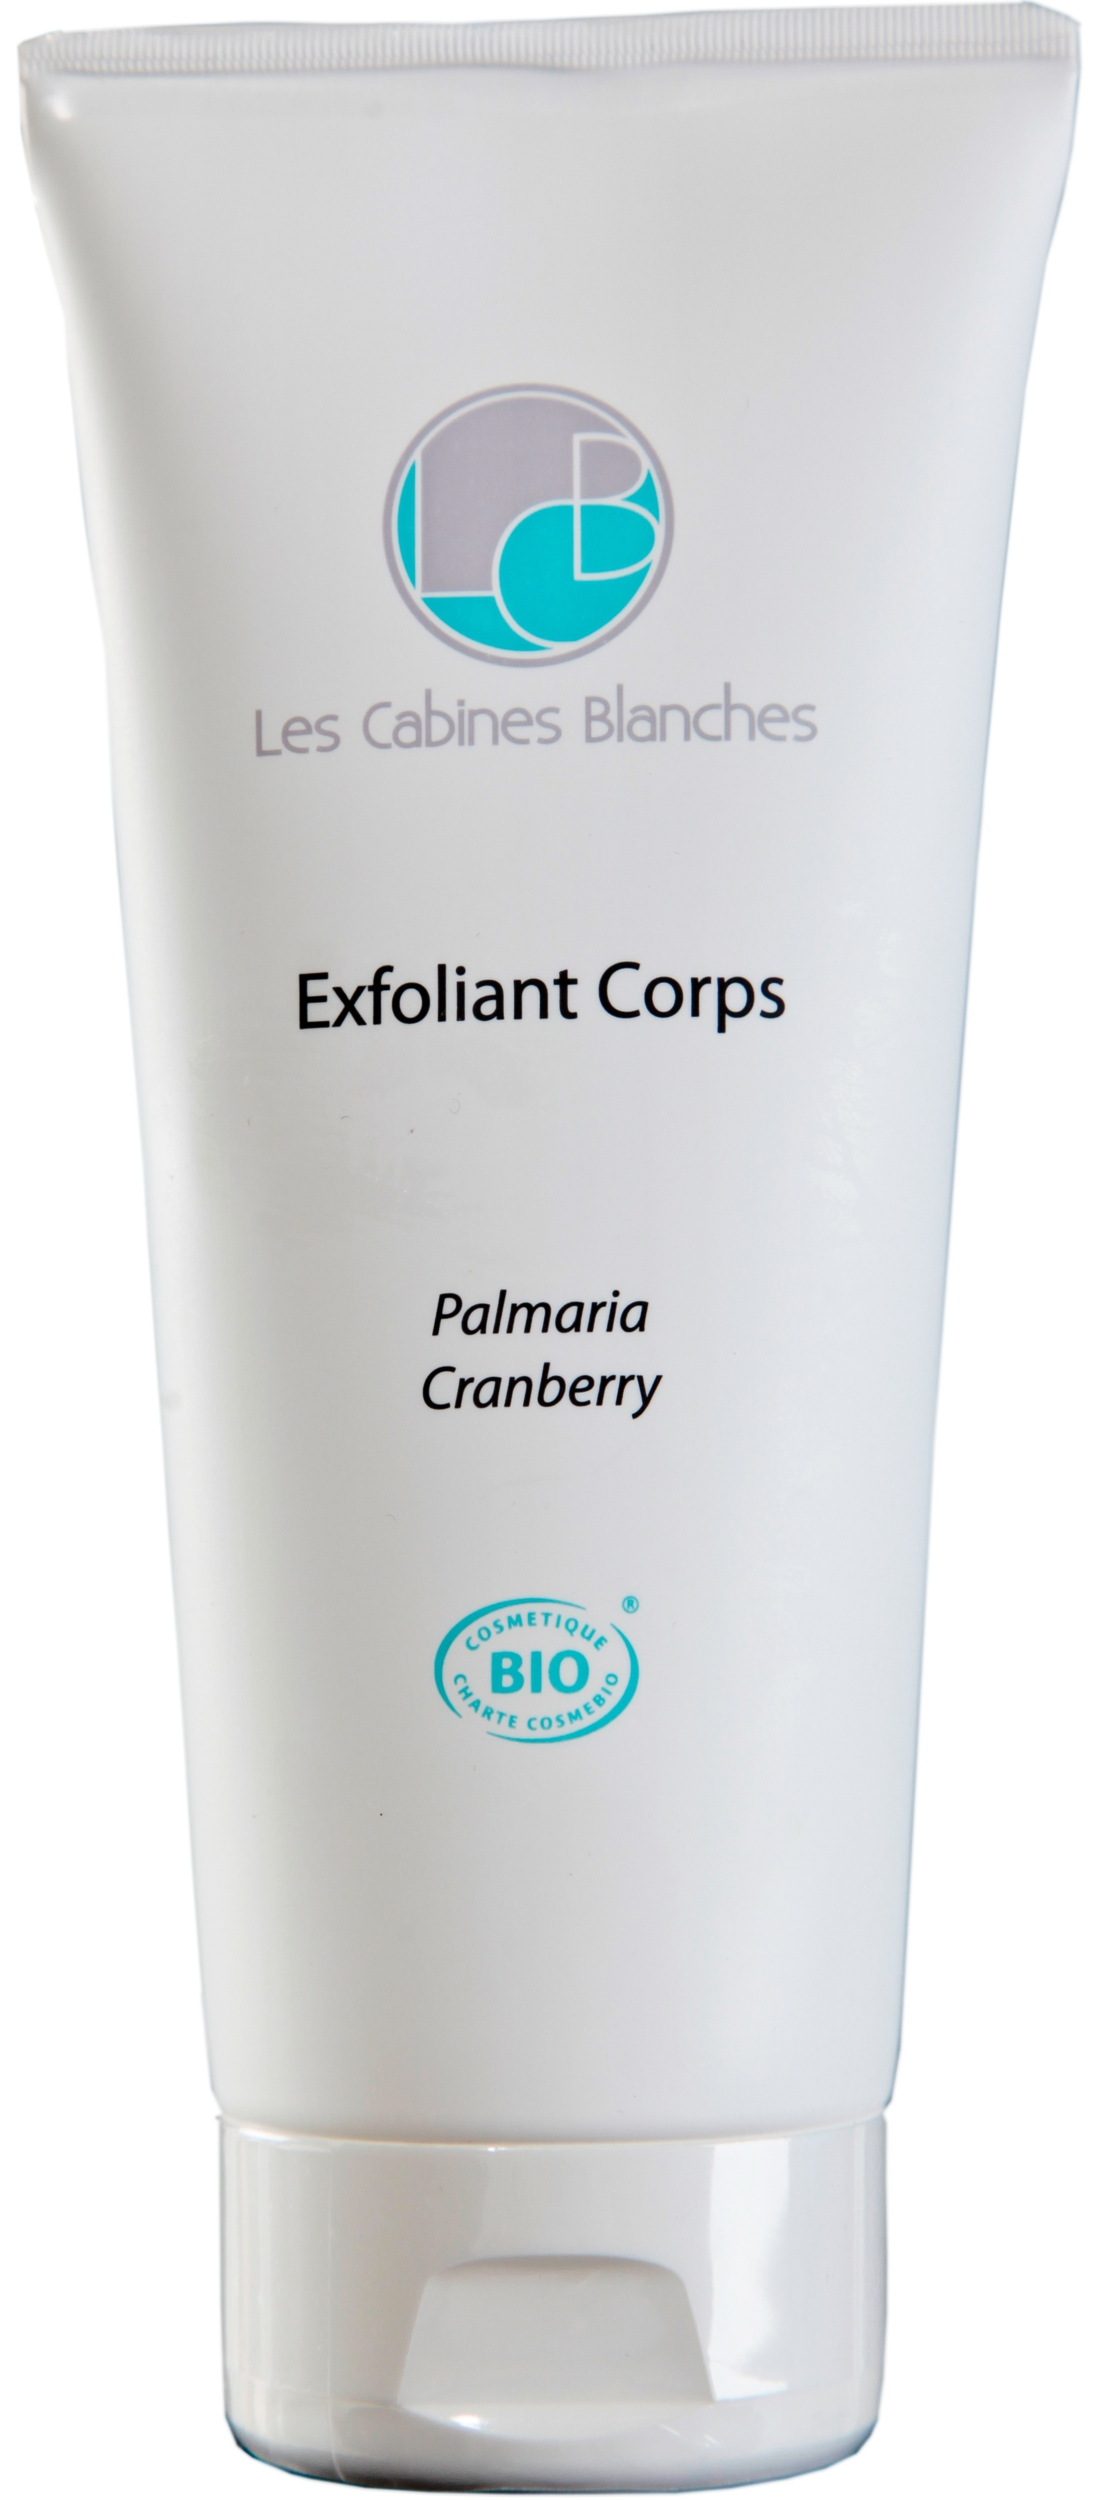 Doux Good - Les Cabines Blanches - Gommage corps - Exfoliant bio